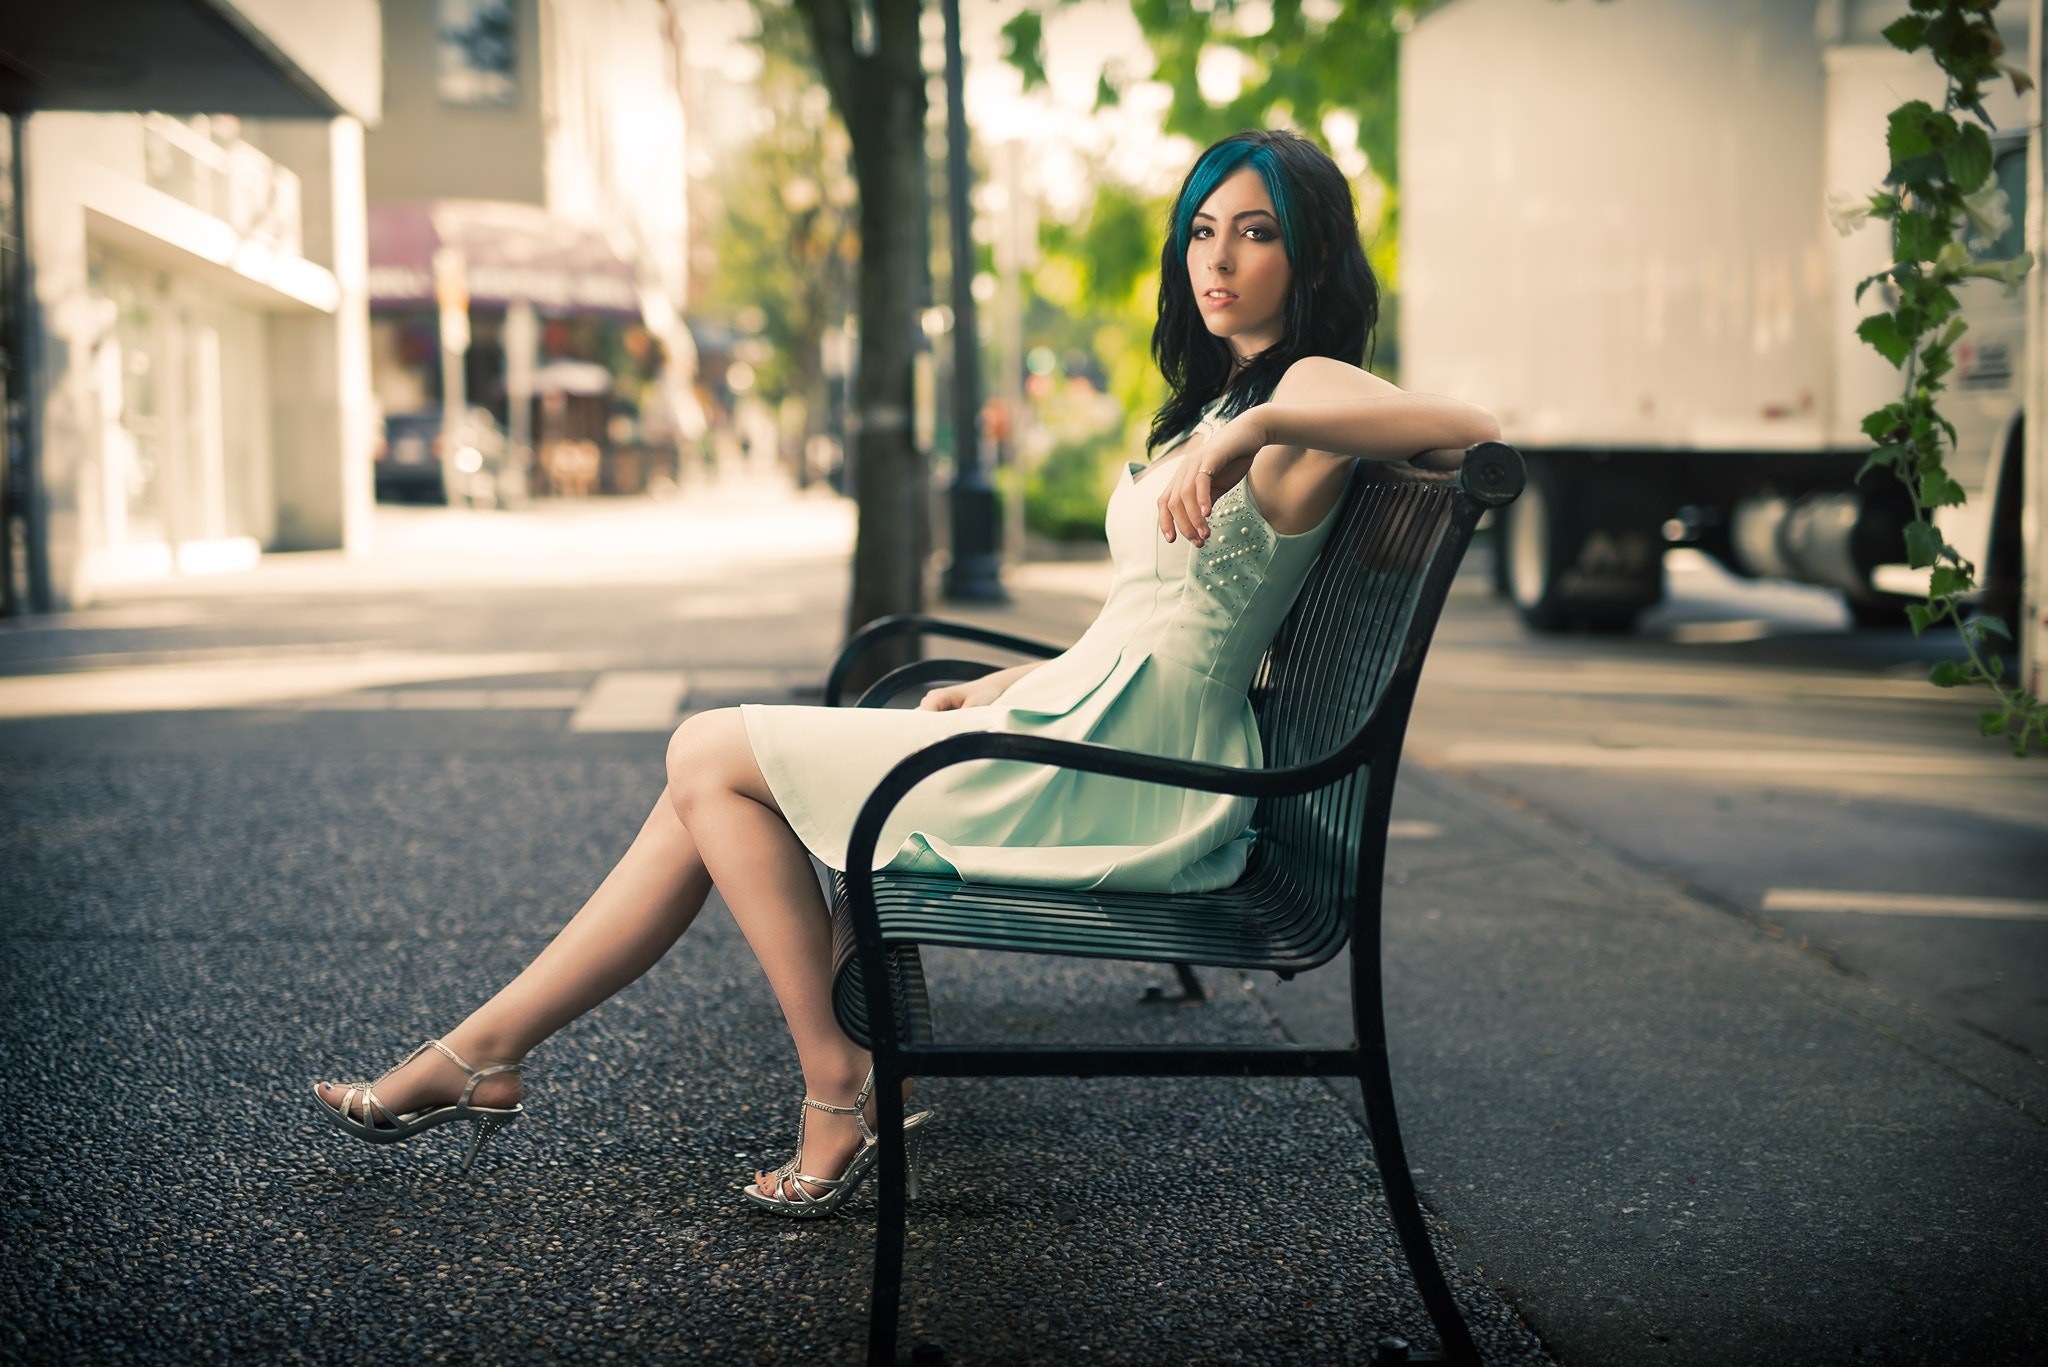 People 2048x1367 Kyle Cong women outdoors urban legs bench women 500px high heels feet black hair